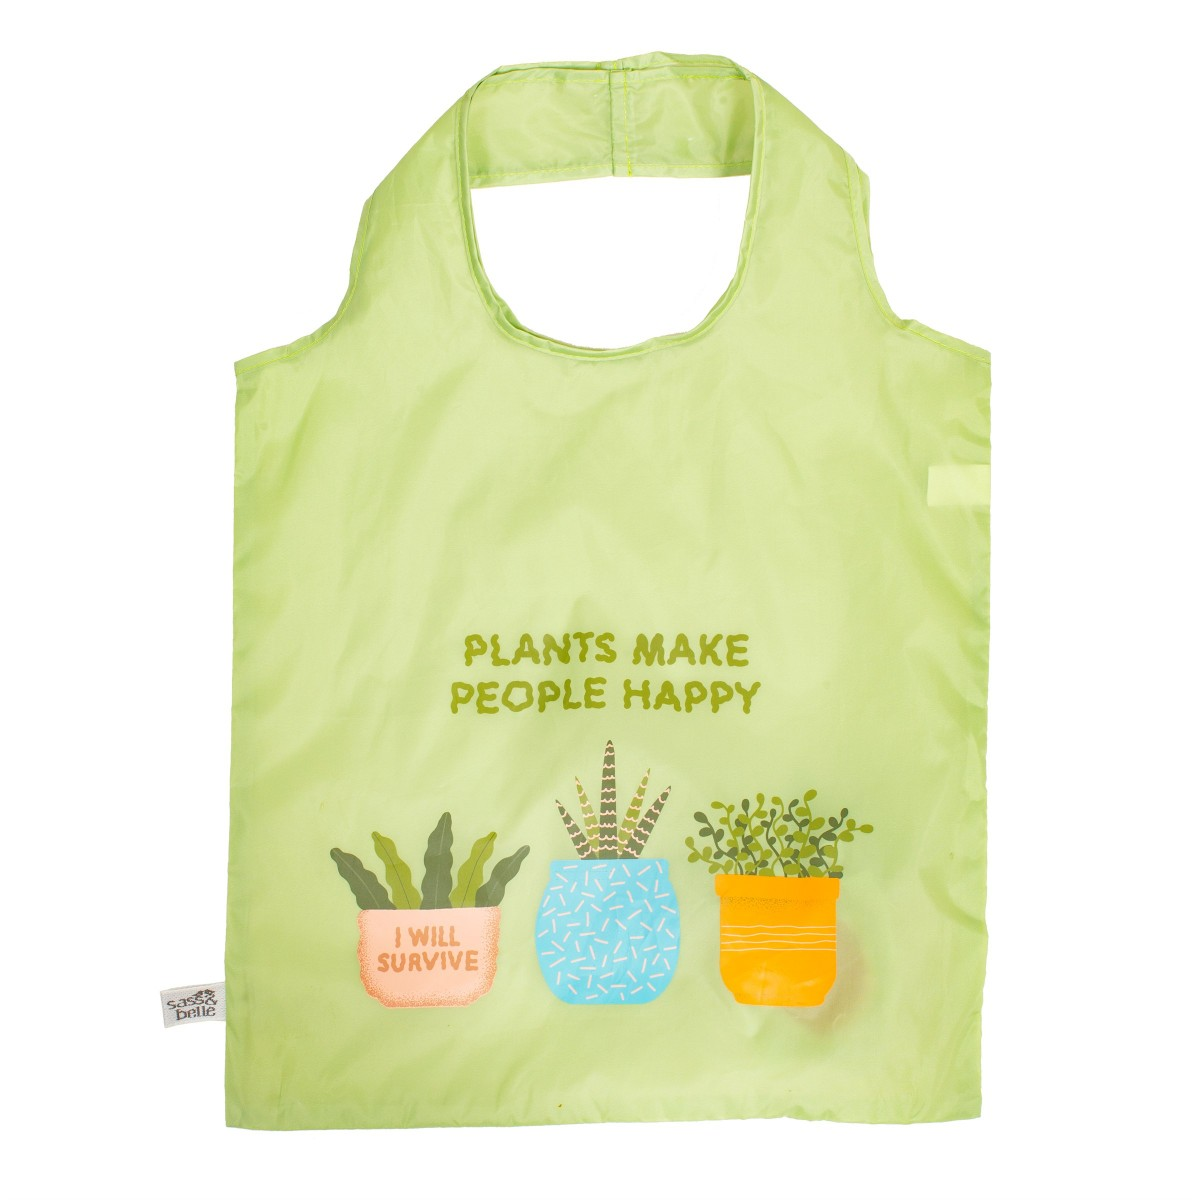 Sass-belle-plants-are-my-friends-shopping-bag-tas